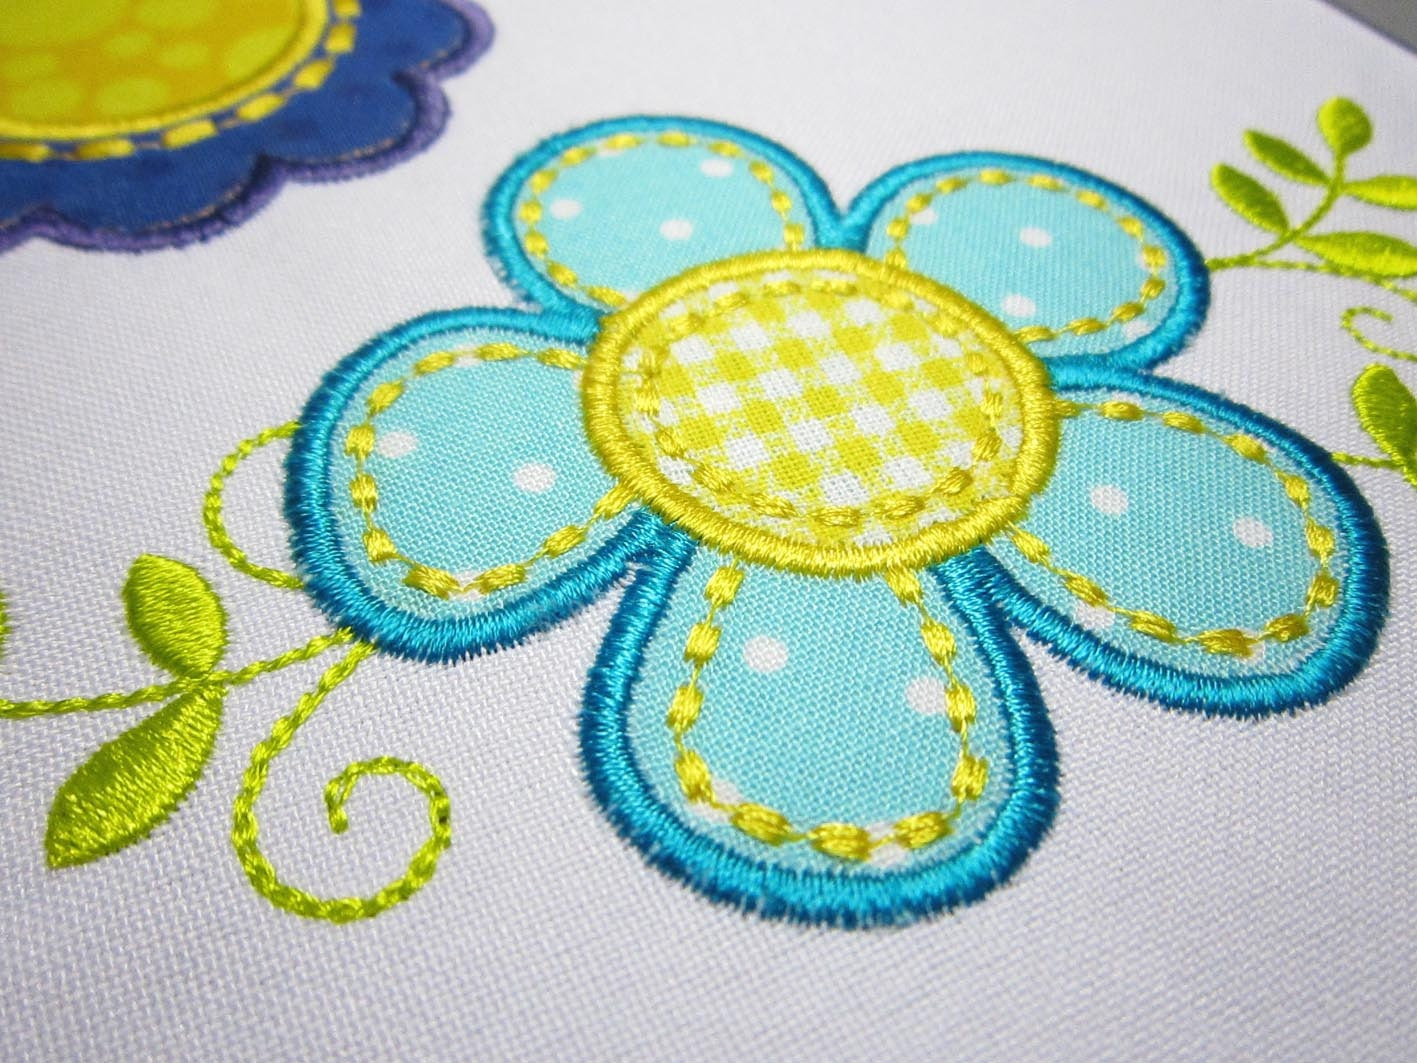 Flowers applique set hand stitch embroidery design fl003 etsy